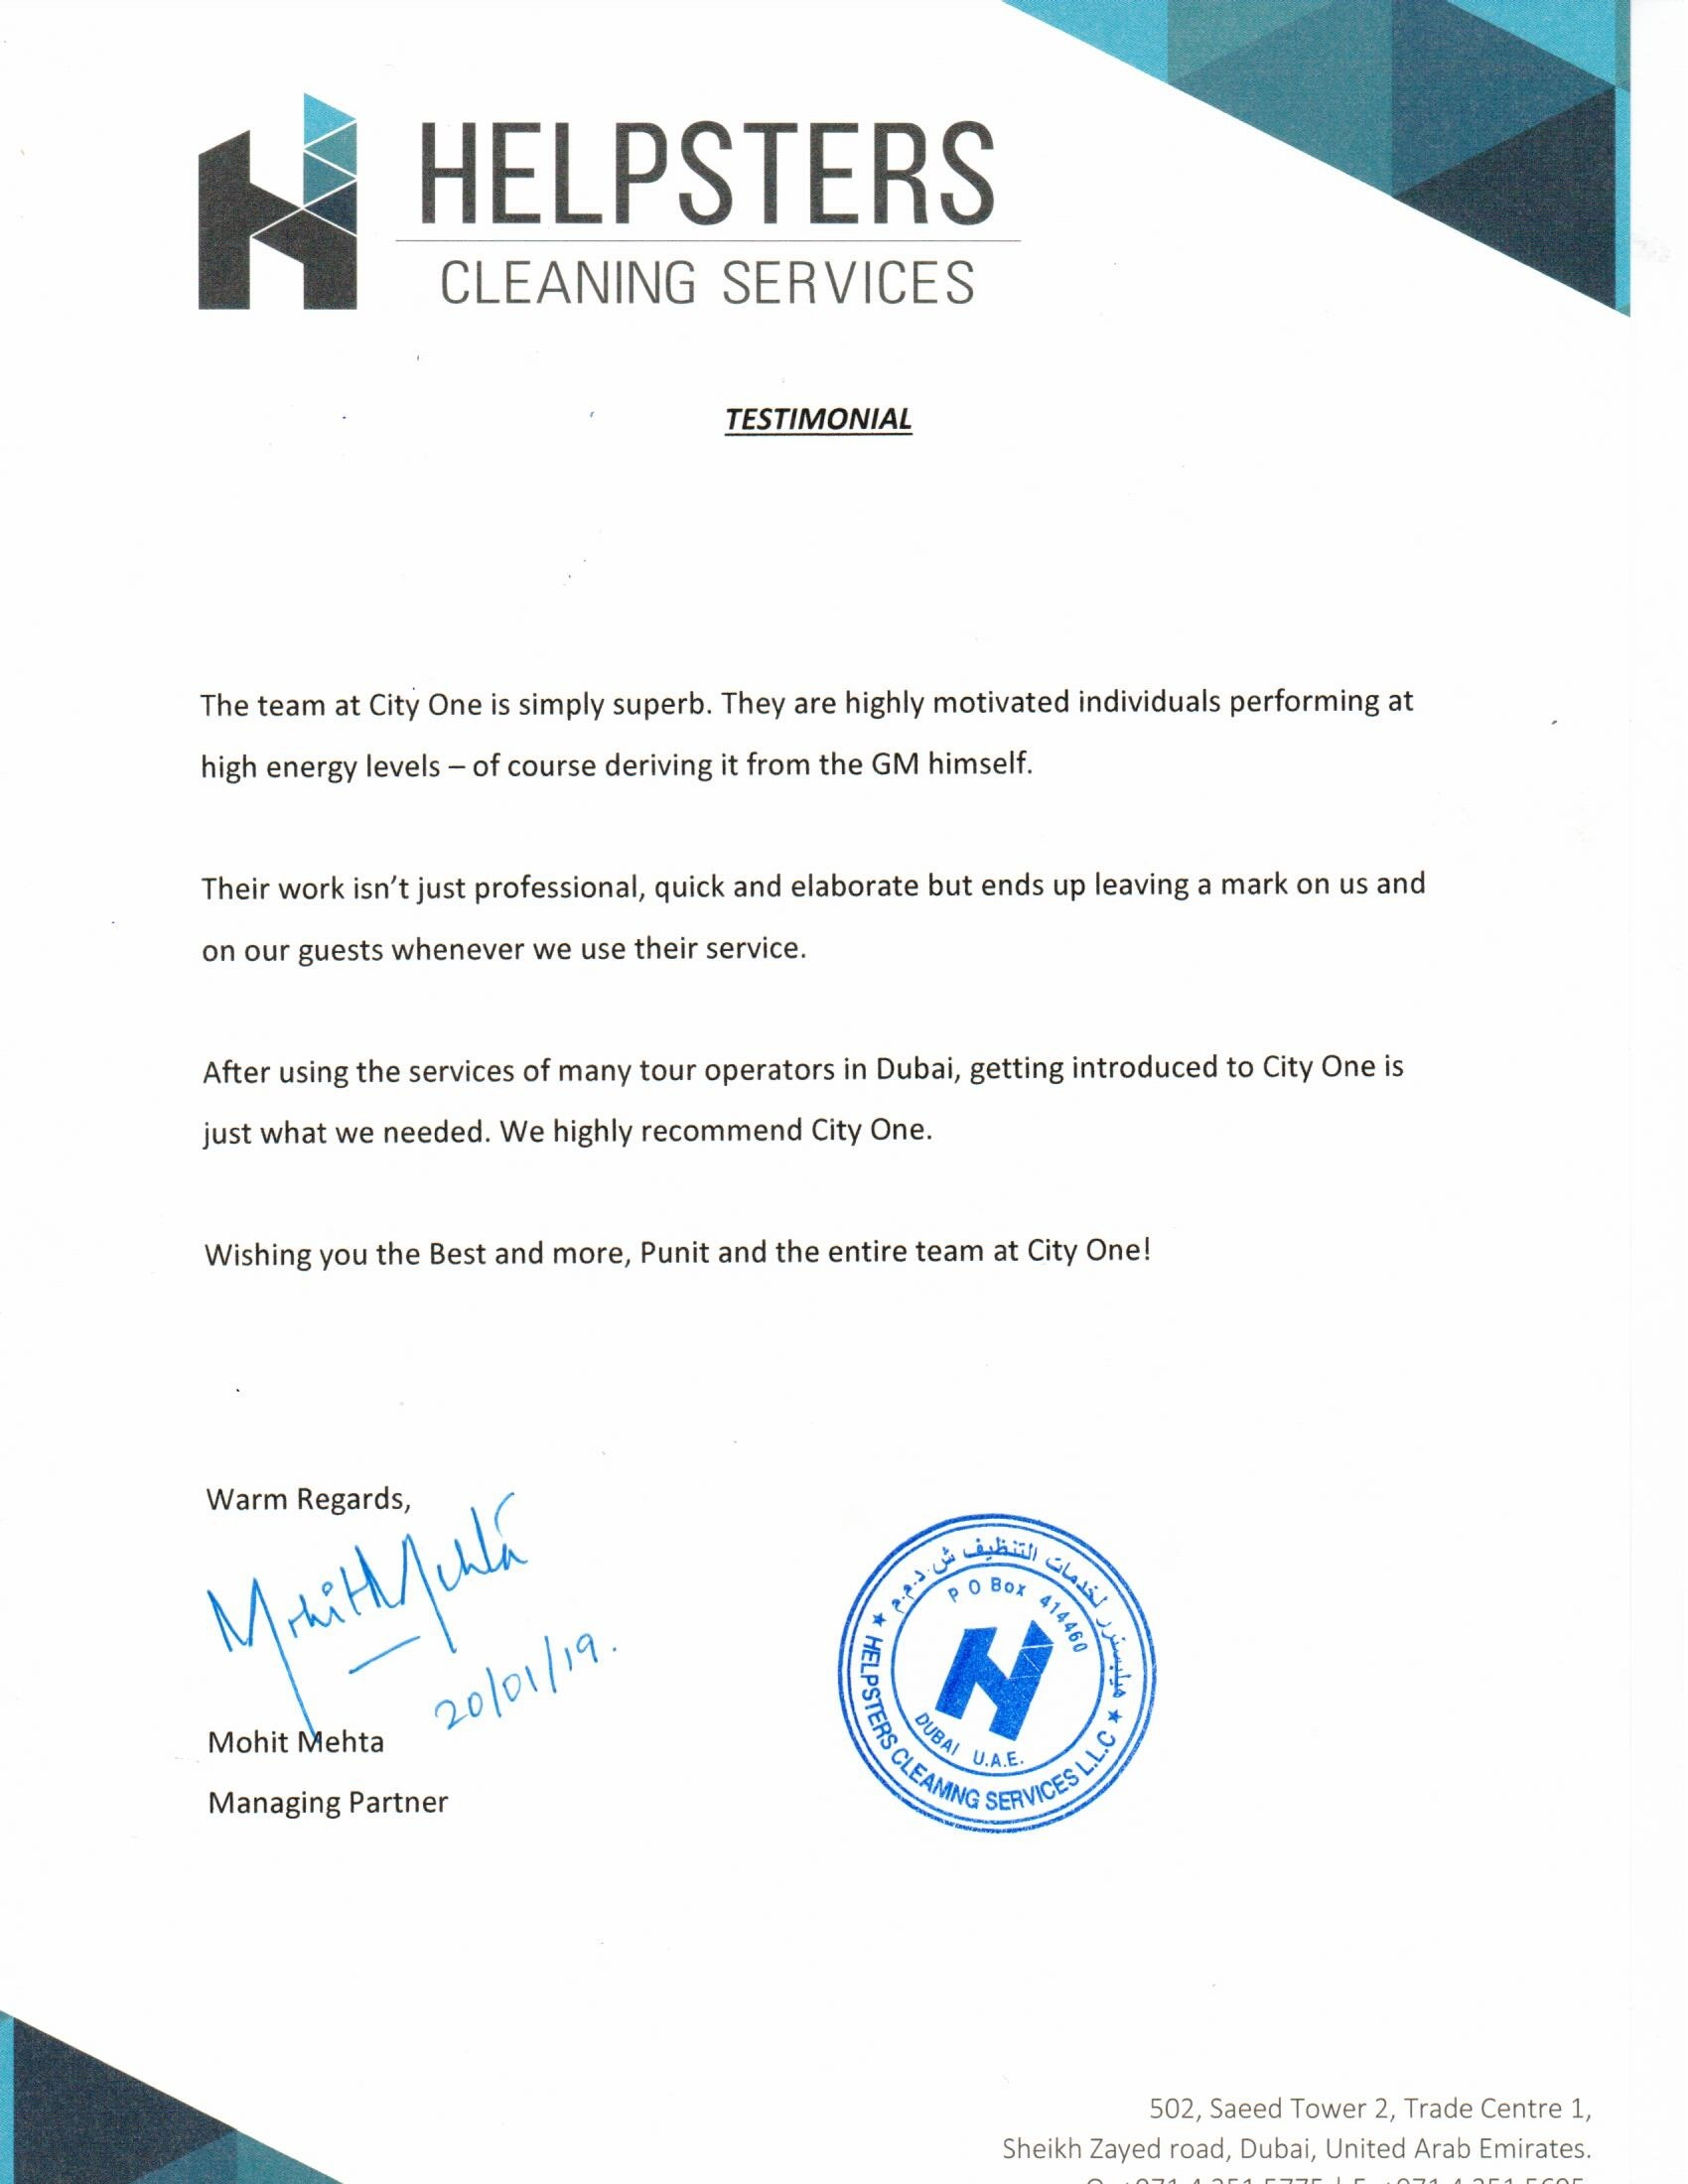 Helpsters Cleaning Services